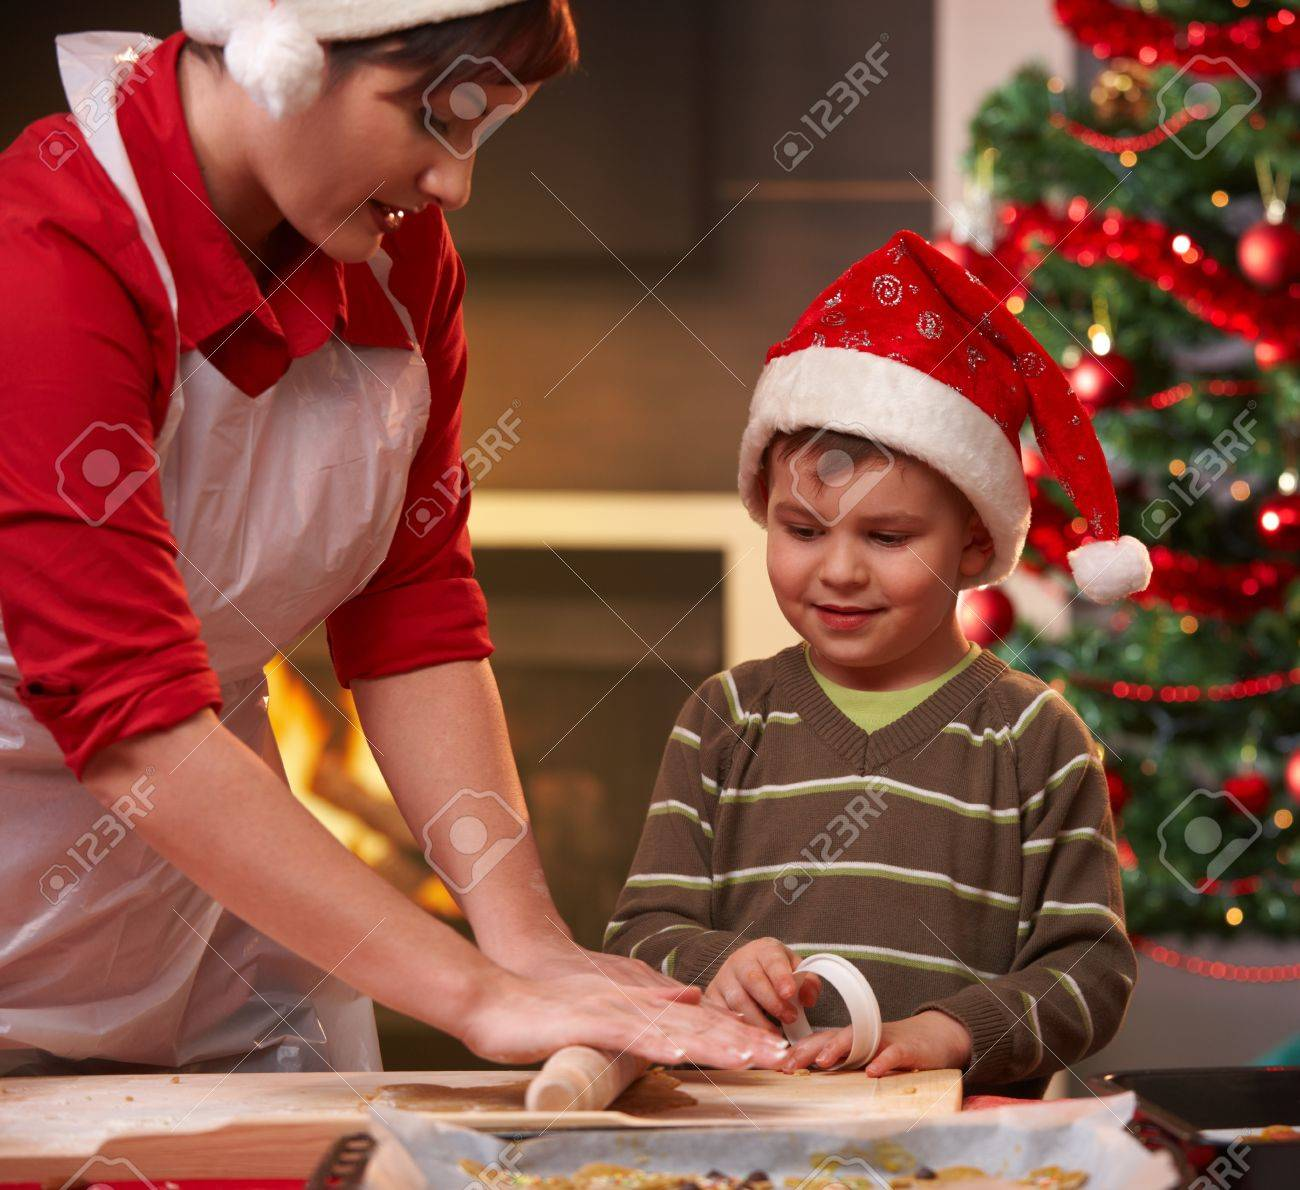 How to make christmas cake - Mother And Son Making Christmas Cake Son Watching Mum S Hand Smiling Stock Photo